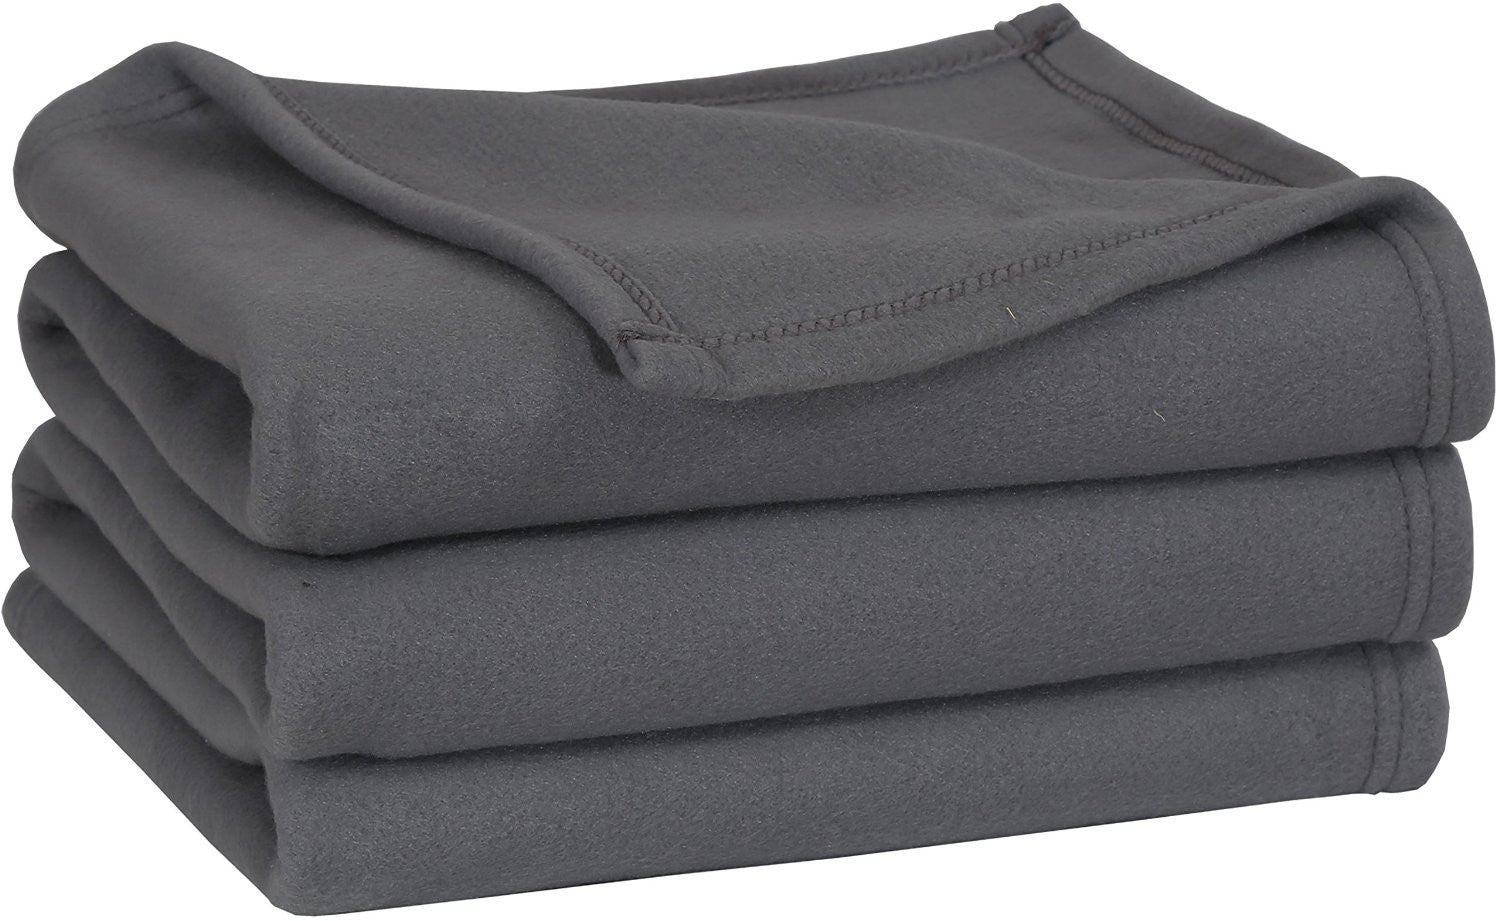 Polar Fleece Throw Blanket (Grey)